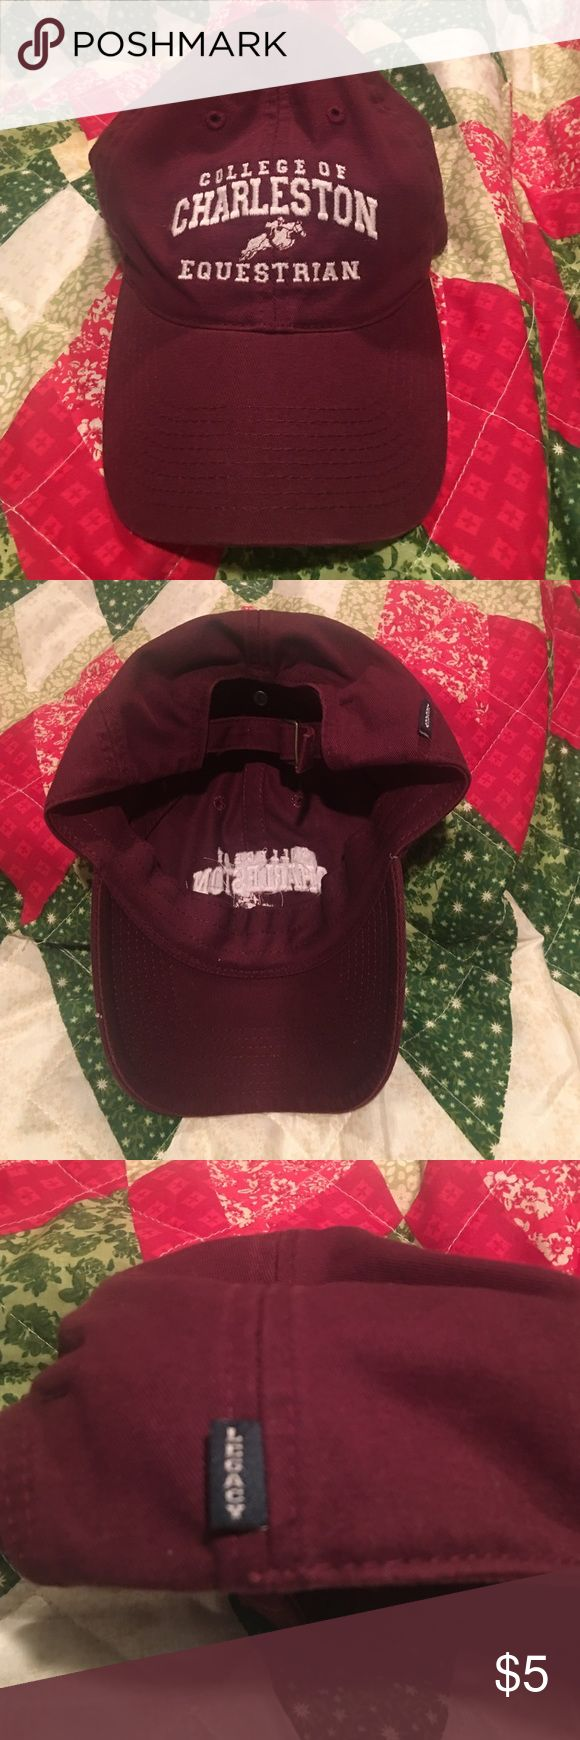 College of CHARLESTON equestrian baseball cap COLLEGE OF CHARLESTON baseball cap - adjustable cloth strap - GOOD condition. legacy Accessories Hats